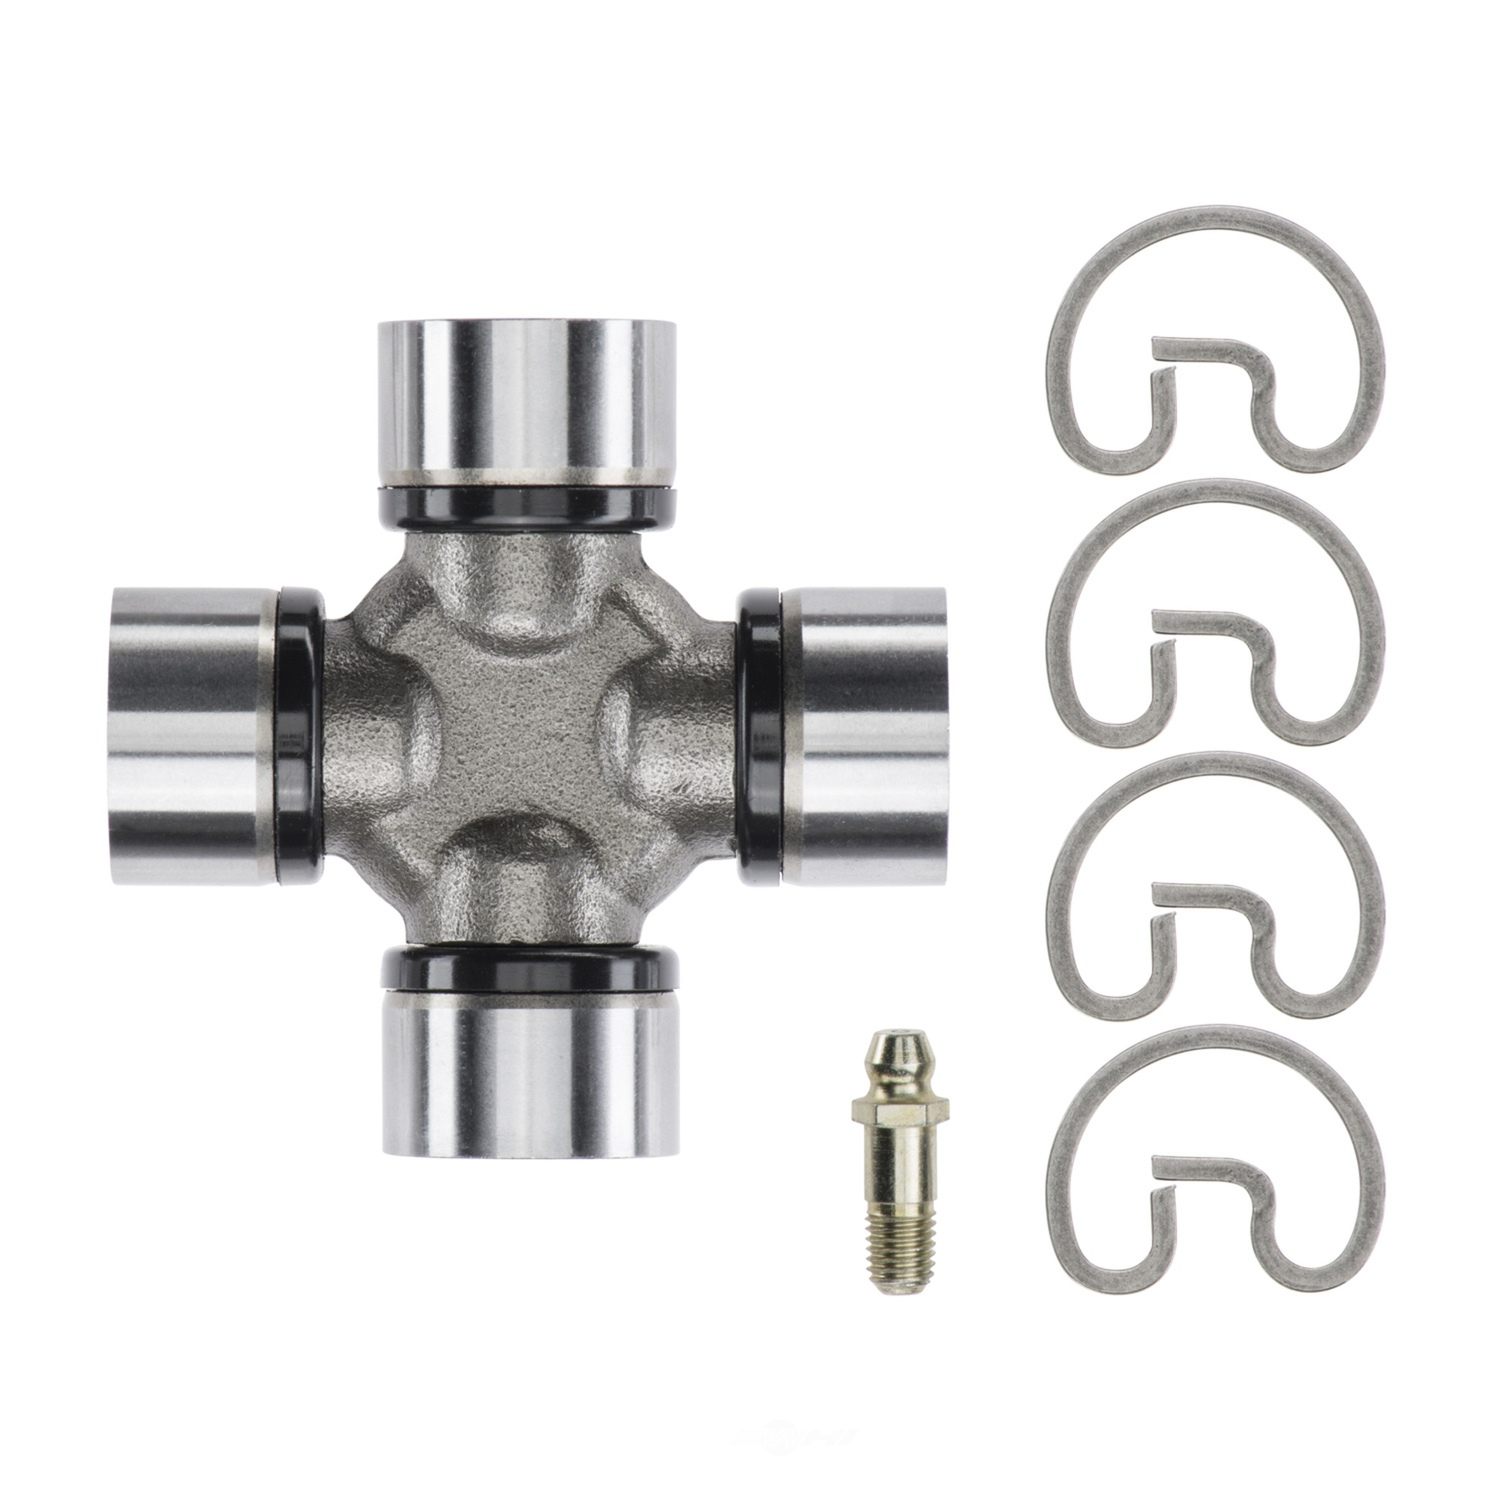 MOOG DRIVELINE PRODUCTS - Universal Joint - MDP 344